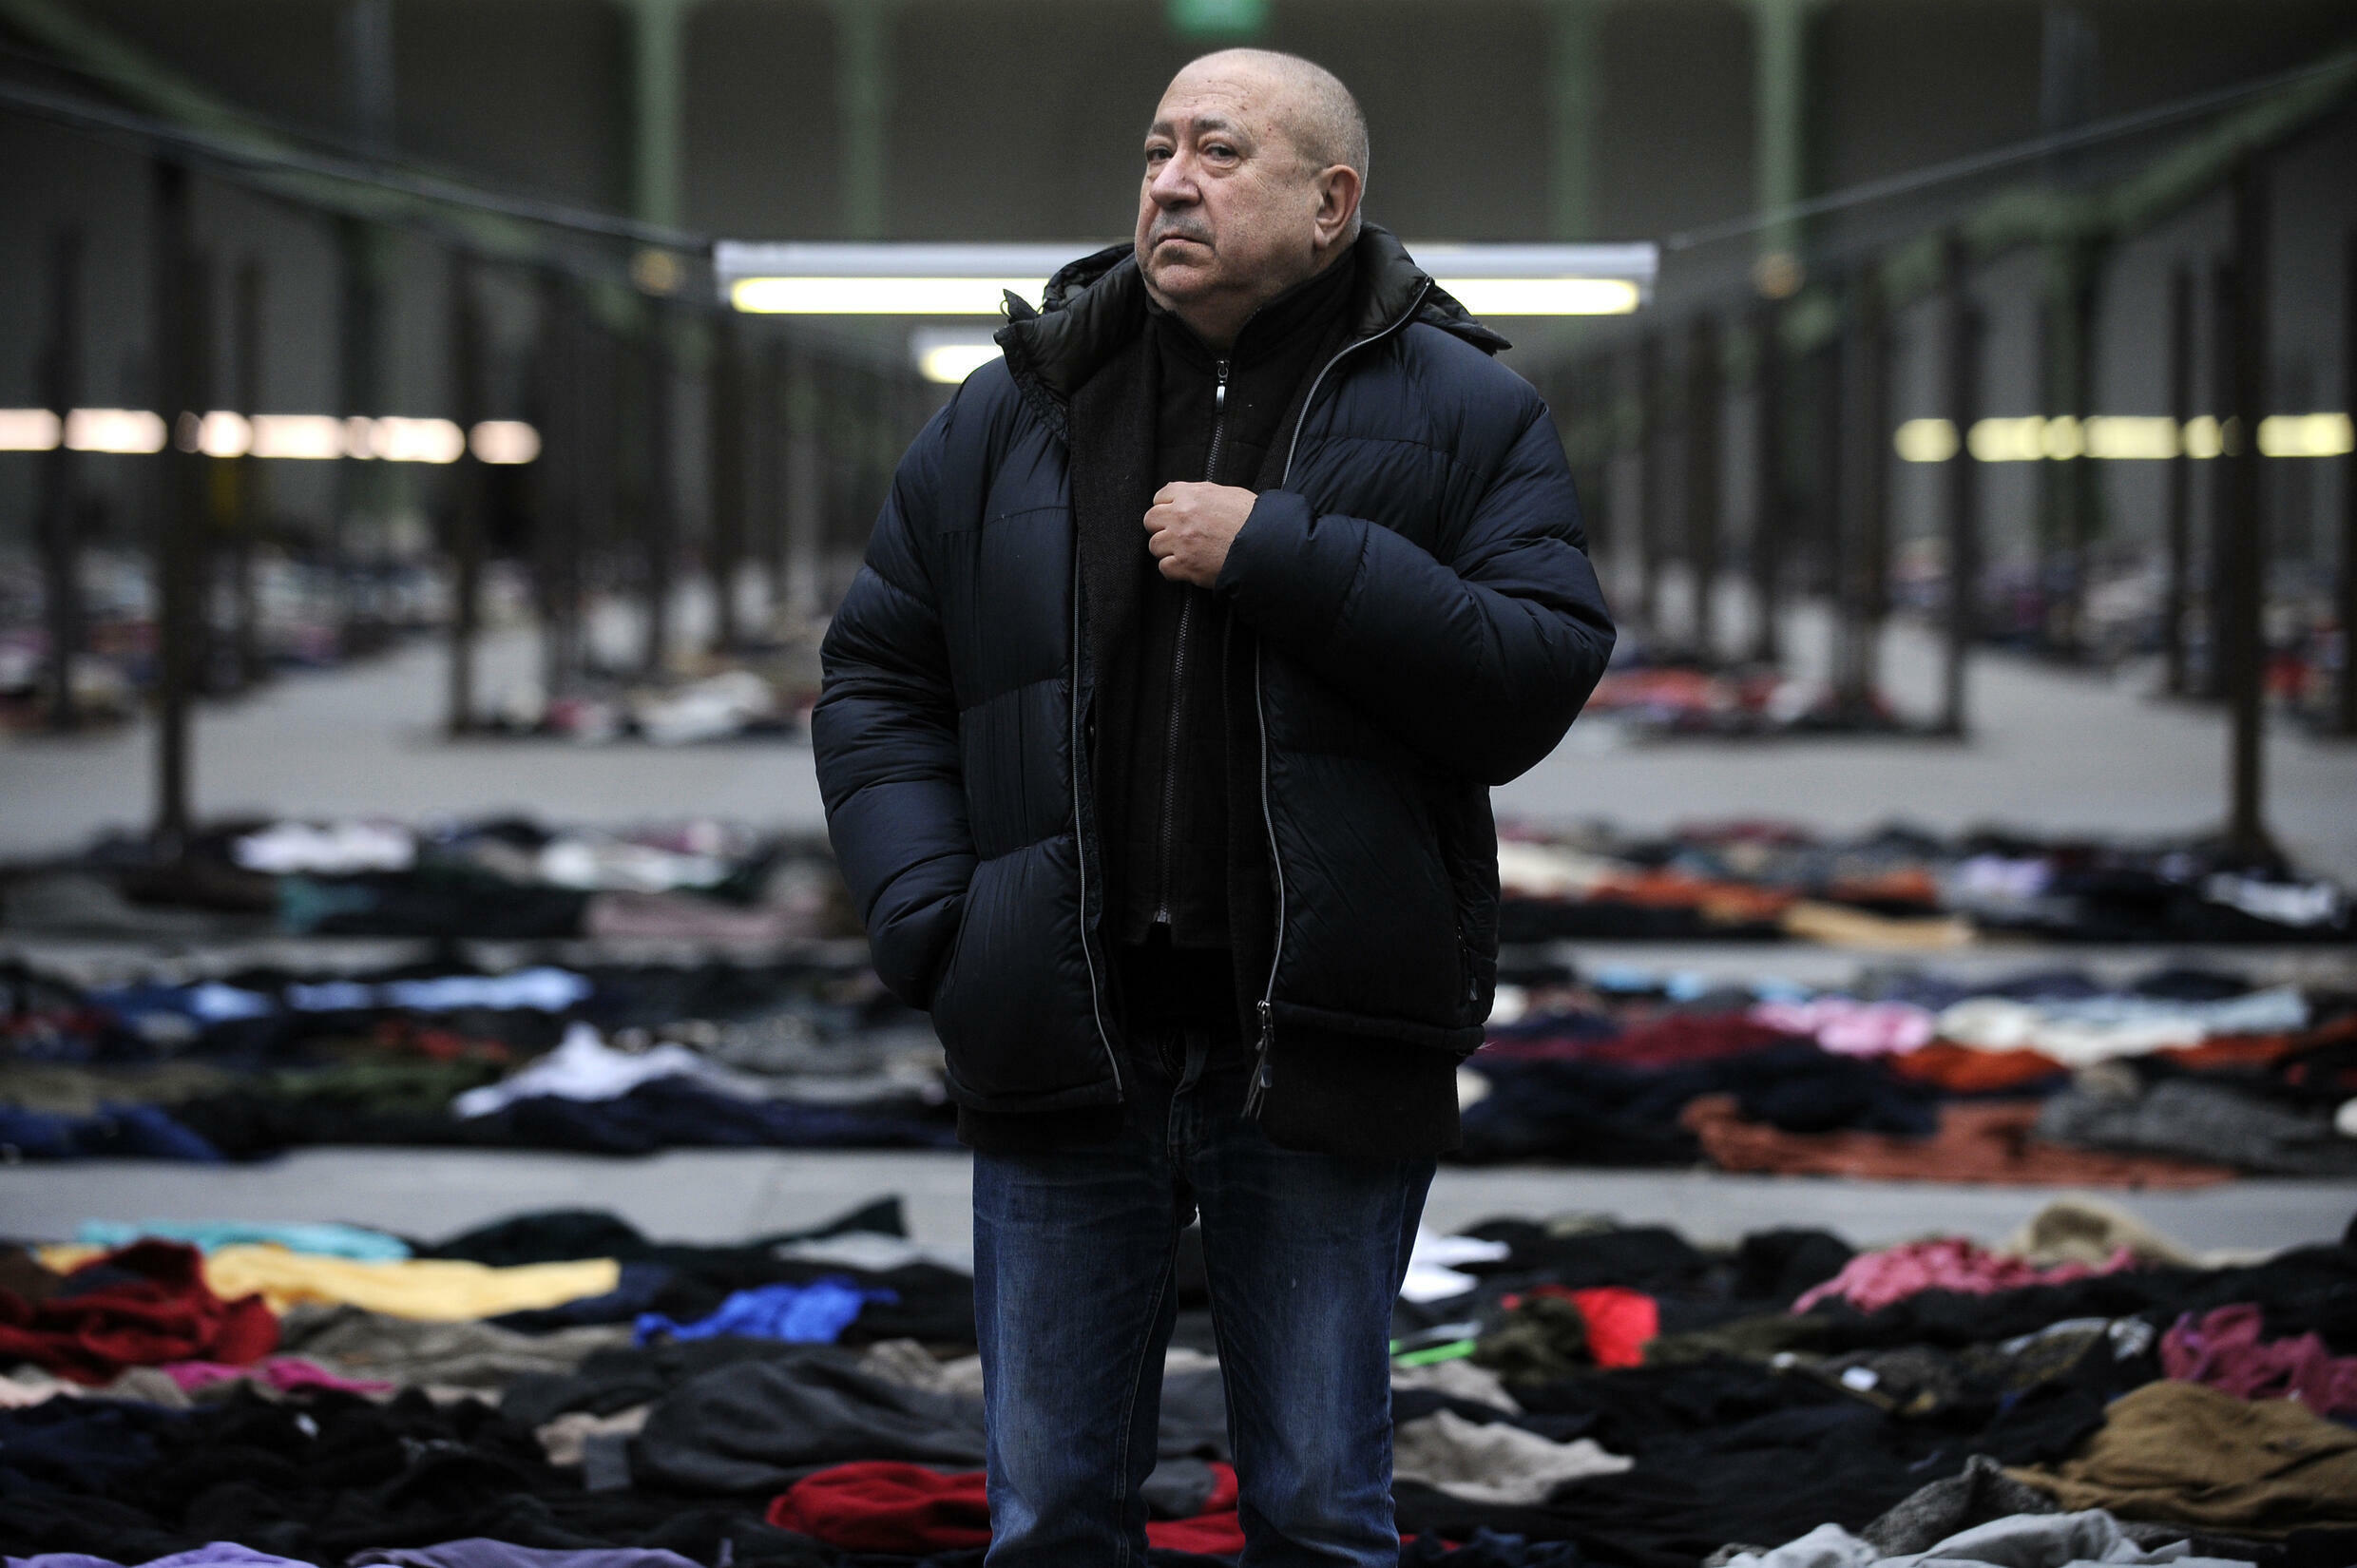 """In """"Personnes"""" in 2010, Boltanski presented visitors to the Grand Palais in Paris with piles of clothes and switched off the heating in the vast building, a meditation on the Nazi death camps"""